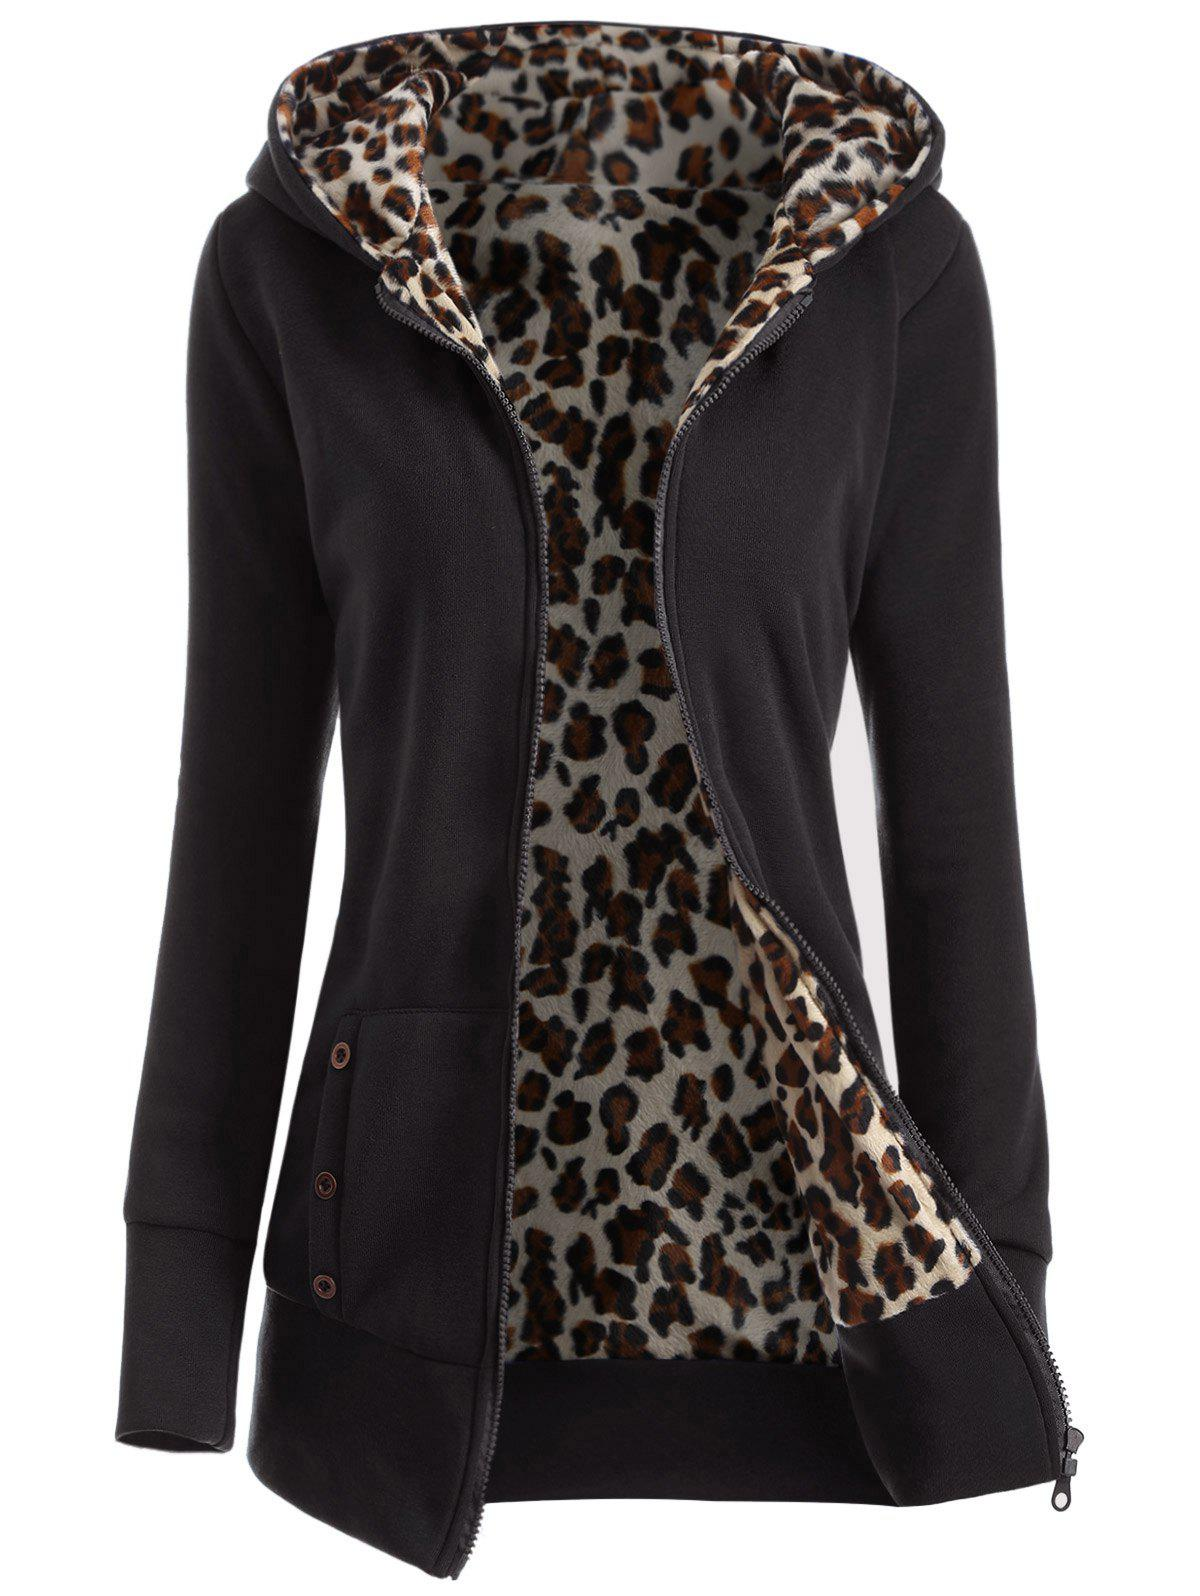 Thick Leopard Printed Inside HoodieWOMEN<br><br>Size: S; Color: BLACK; Material: Polyester; Shirt Length: Long; Sleeve Length: Full; Style: Casual; Pattern Style: Print; Season: Winter; Weight: 0.471kg; Package Contents: 1 x Hoodie;